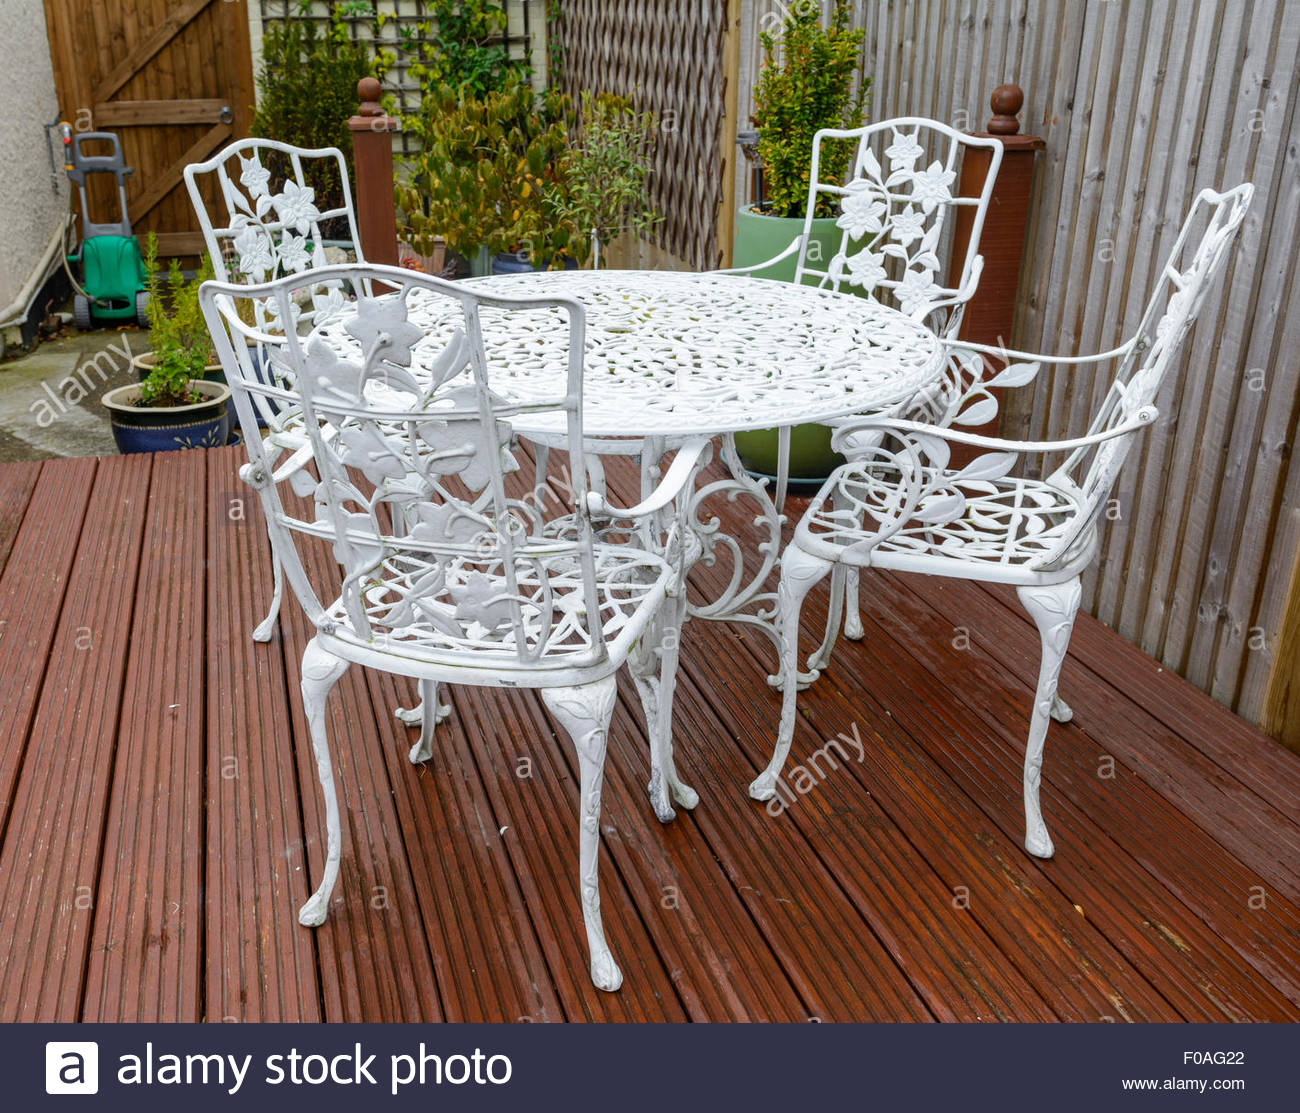 Stock Photo   White Cast Iron Garden Table And Chairs In A Back Garden